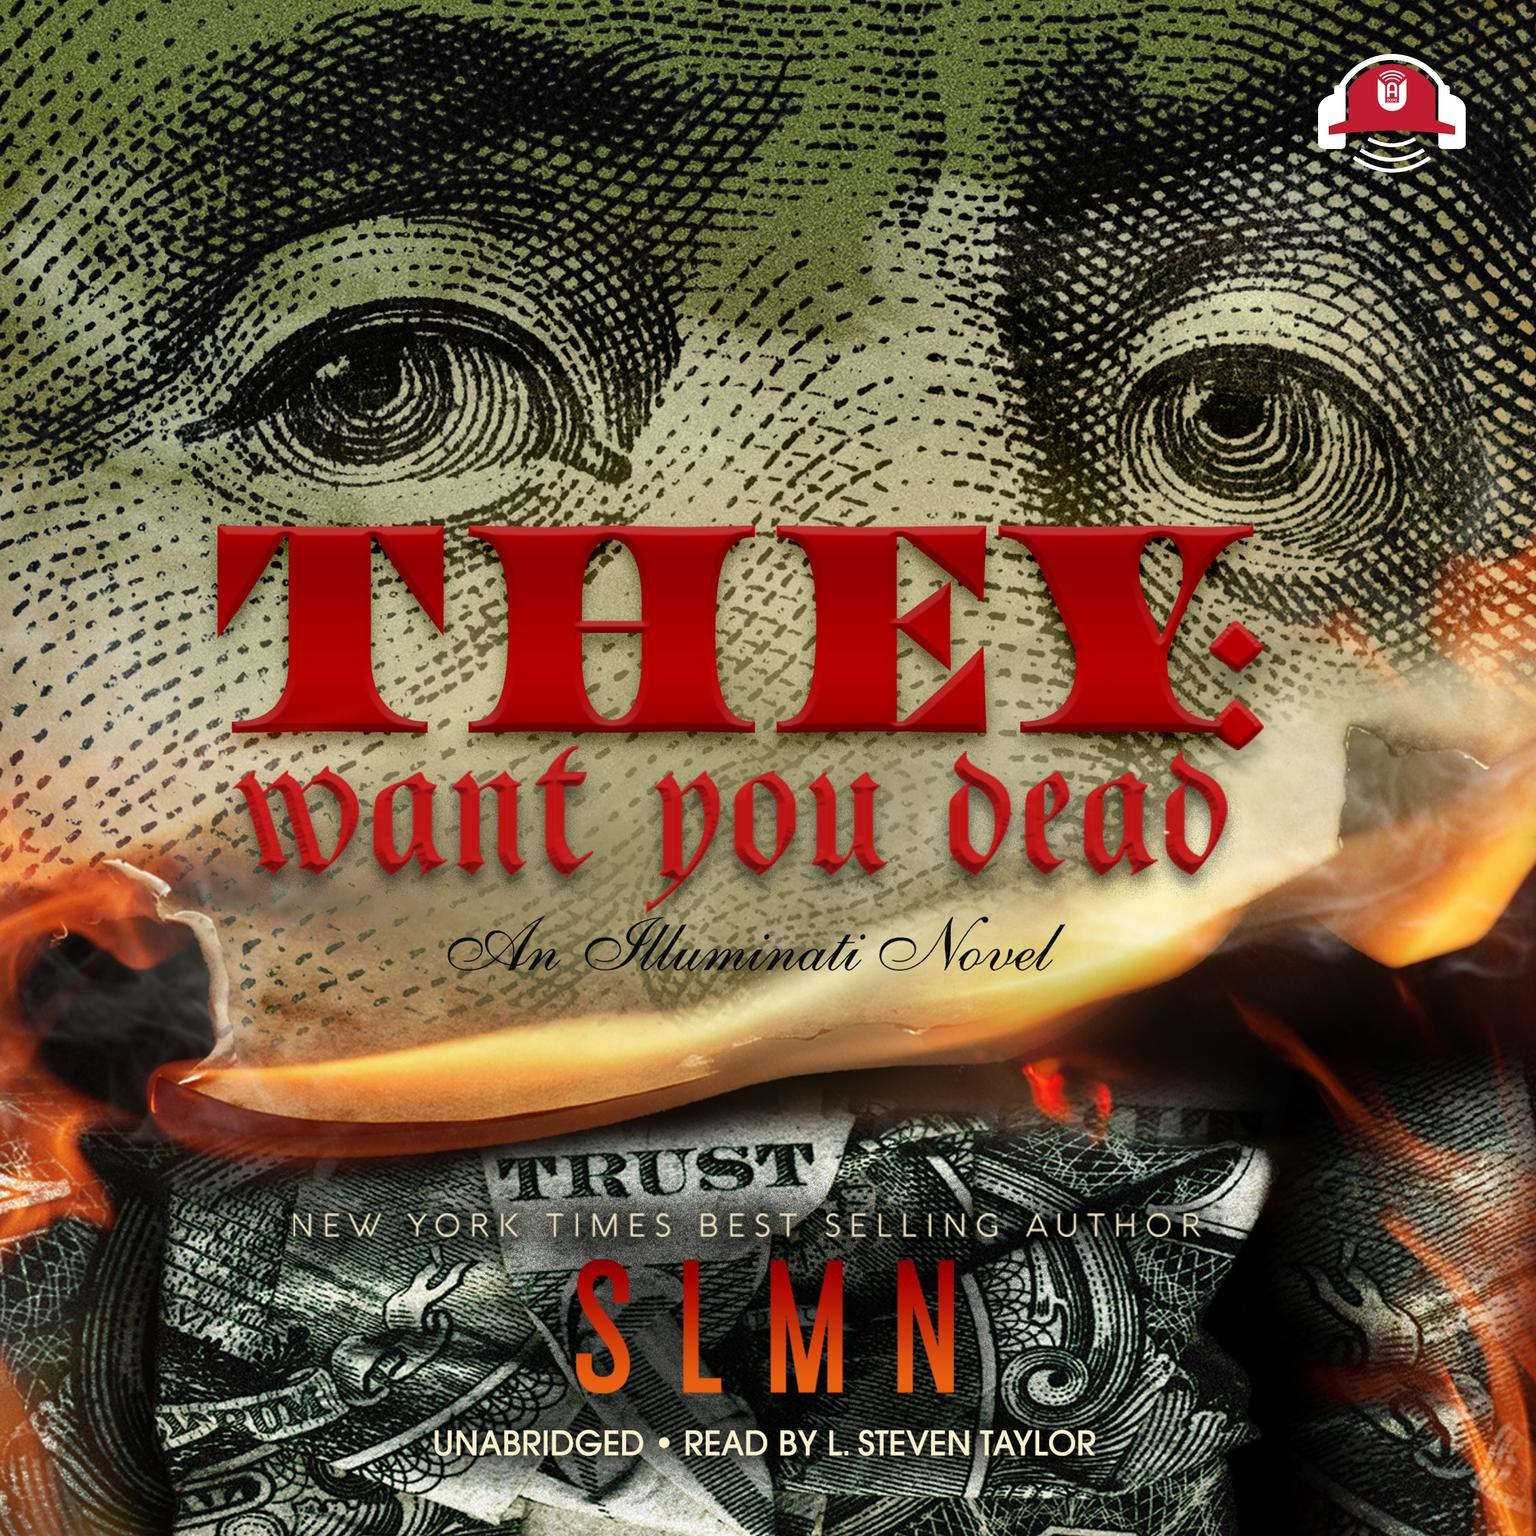 Printable They: Want You Dead: An Illuminati Novel Audiobook Cover Art